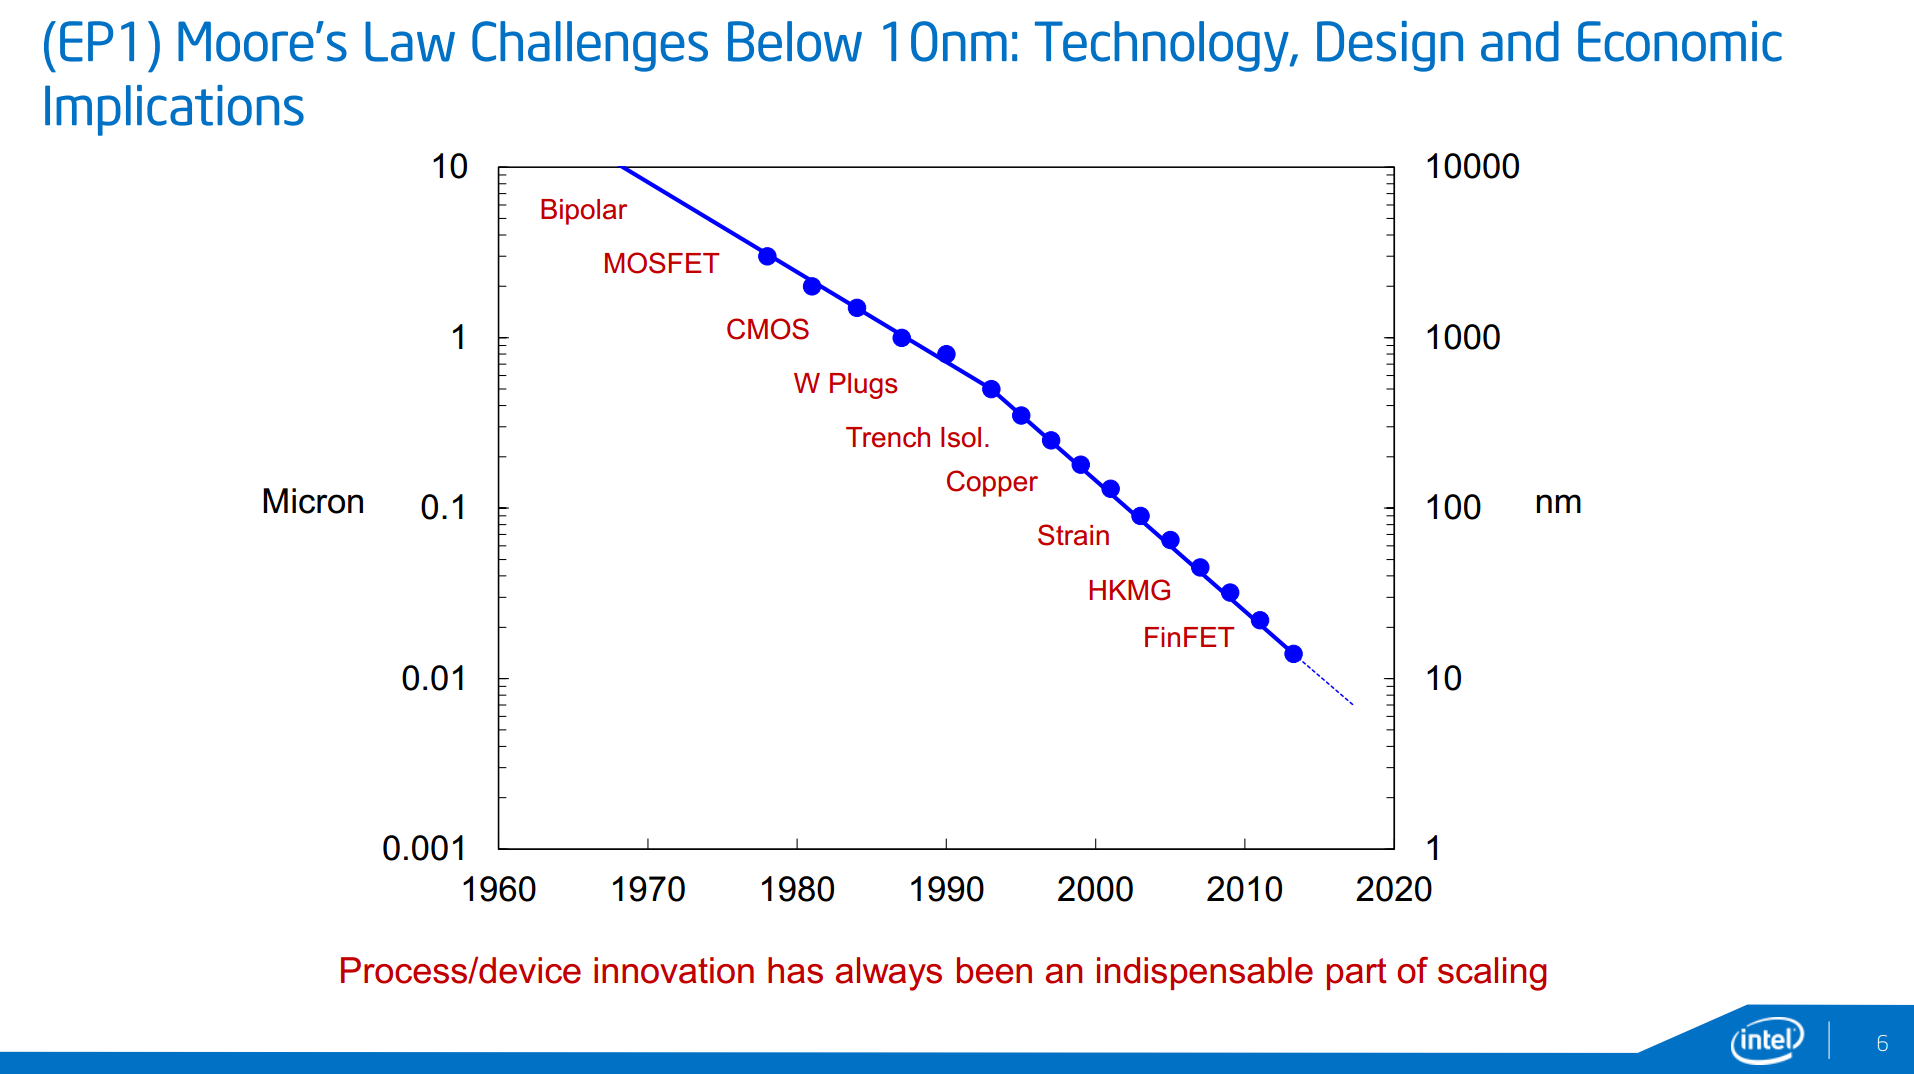 http://images.anandtech.com/doci/8991/Slide%206%20-%20Process%20Innovation.png